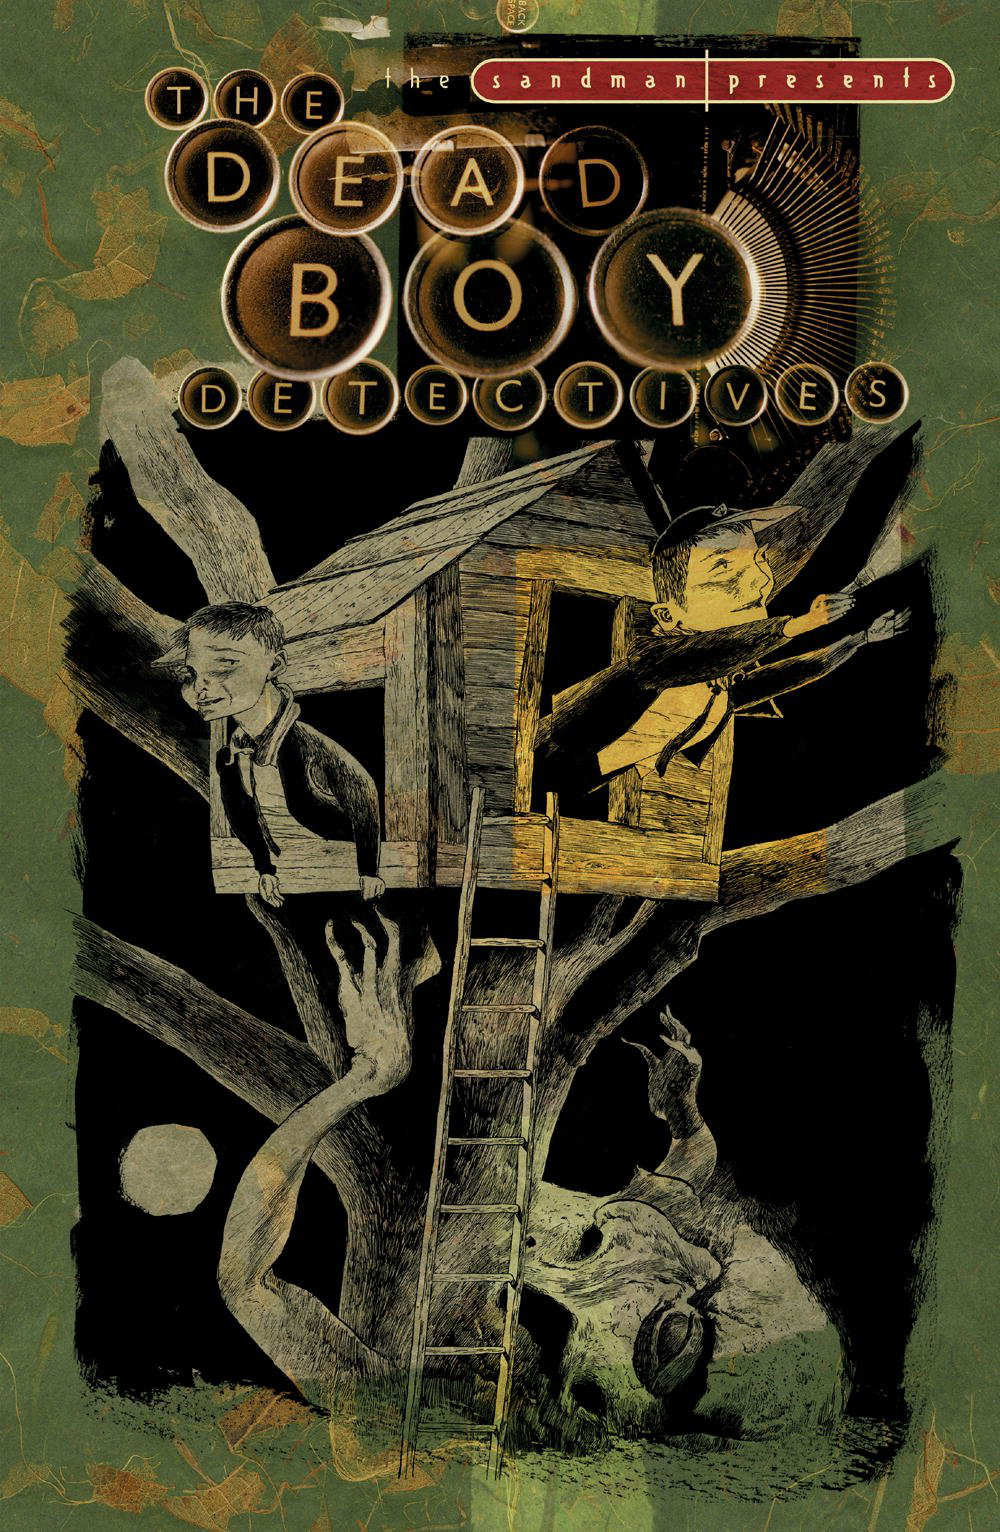 From A Library – The Dead Boy Detectives: The Secret of Immortality